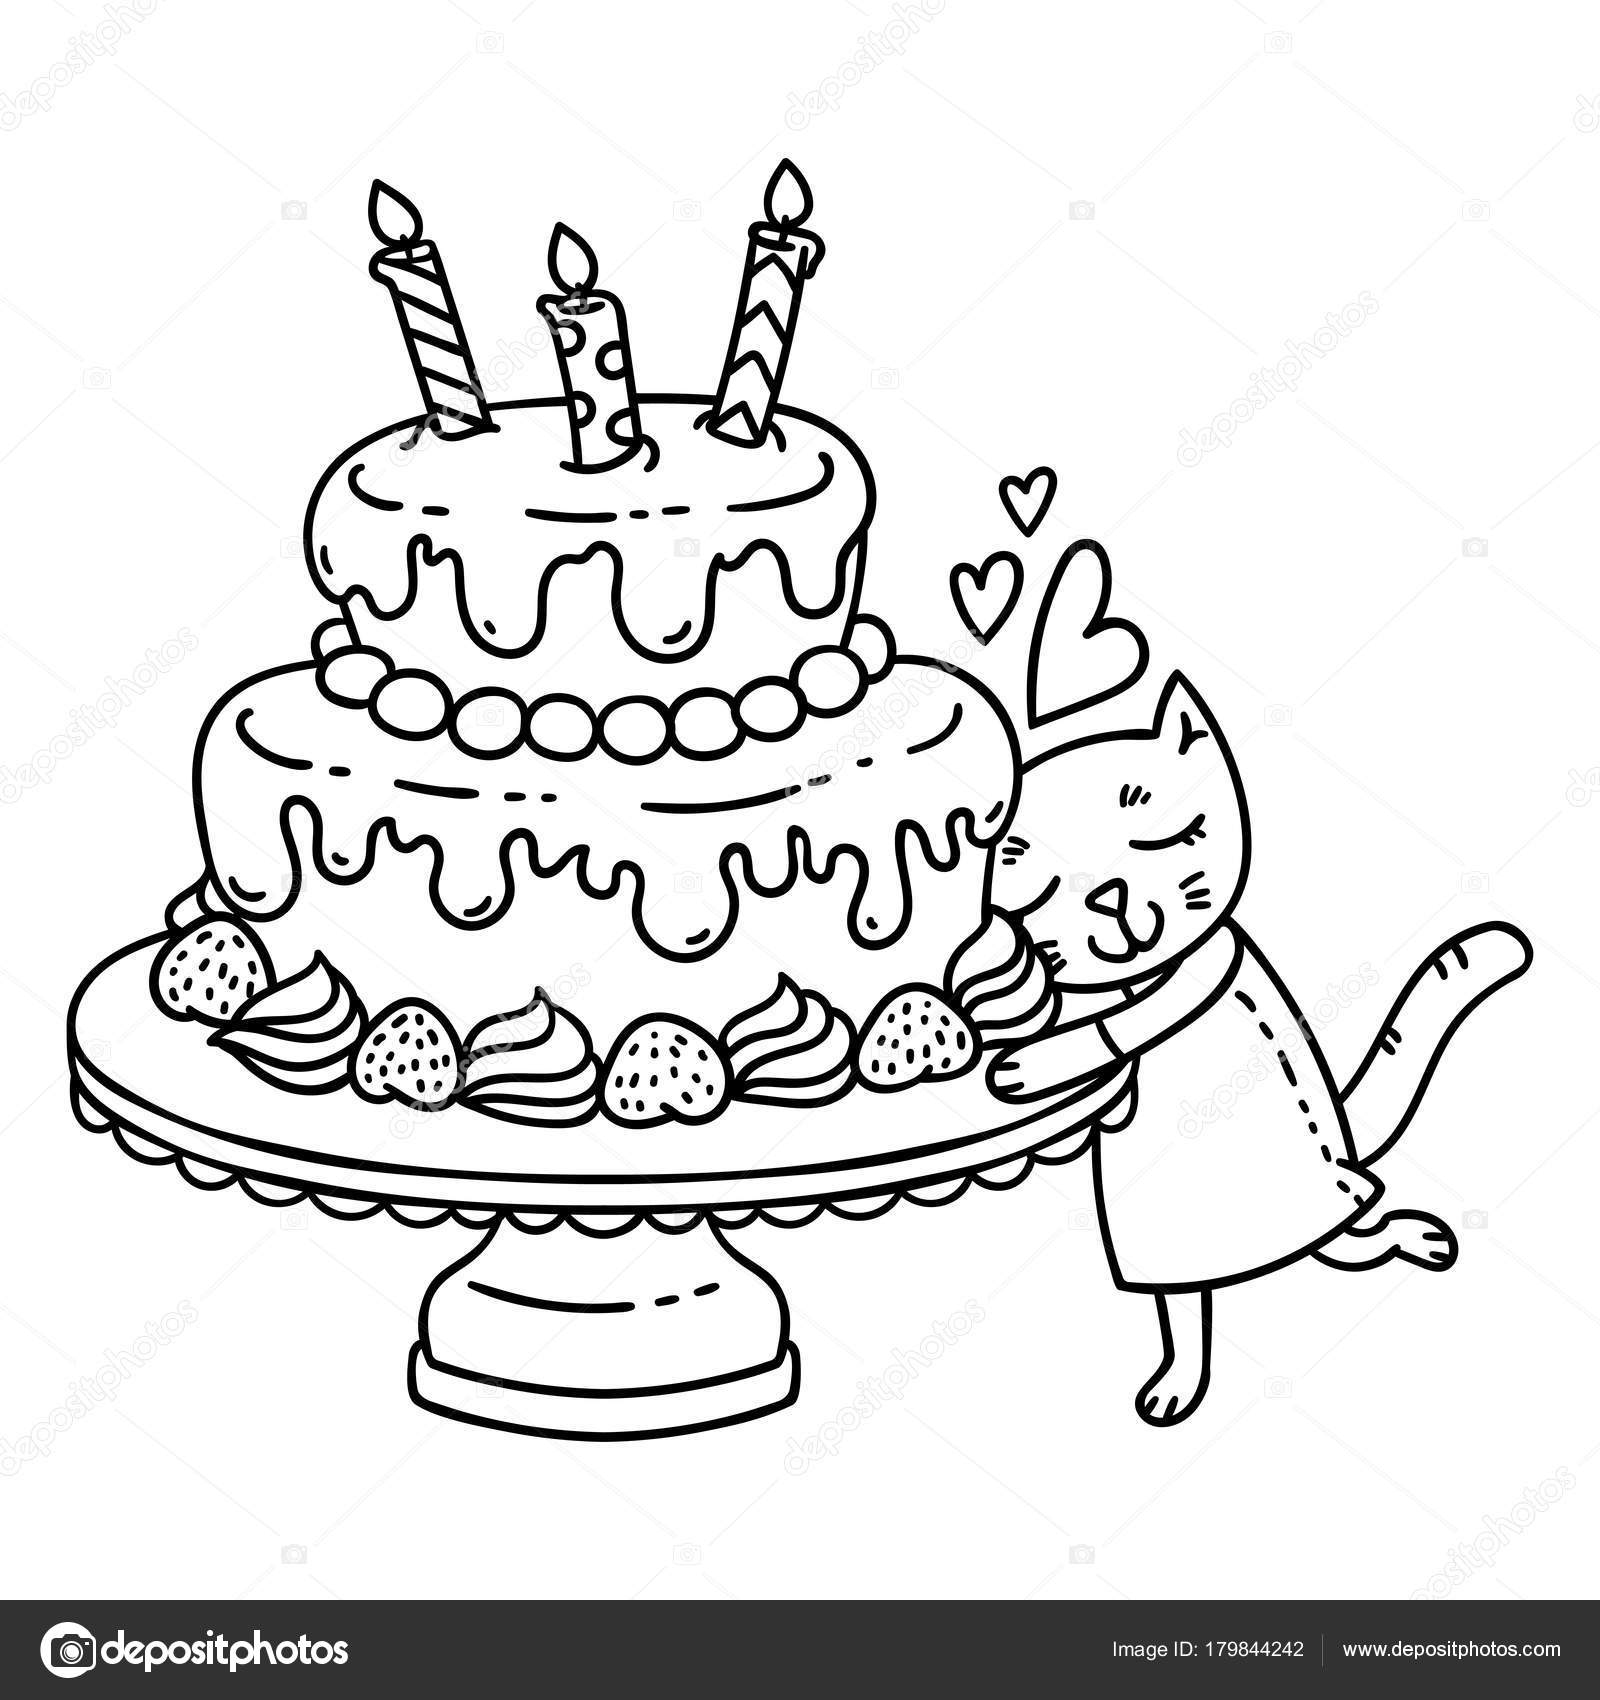 birthday cat coloring pages dibujos para colorear de velas de cumpleanos para colorear cat birthday pages coloring